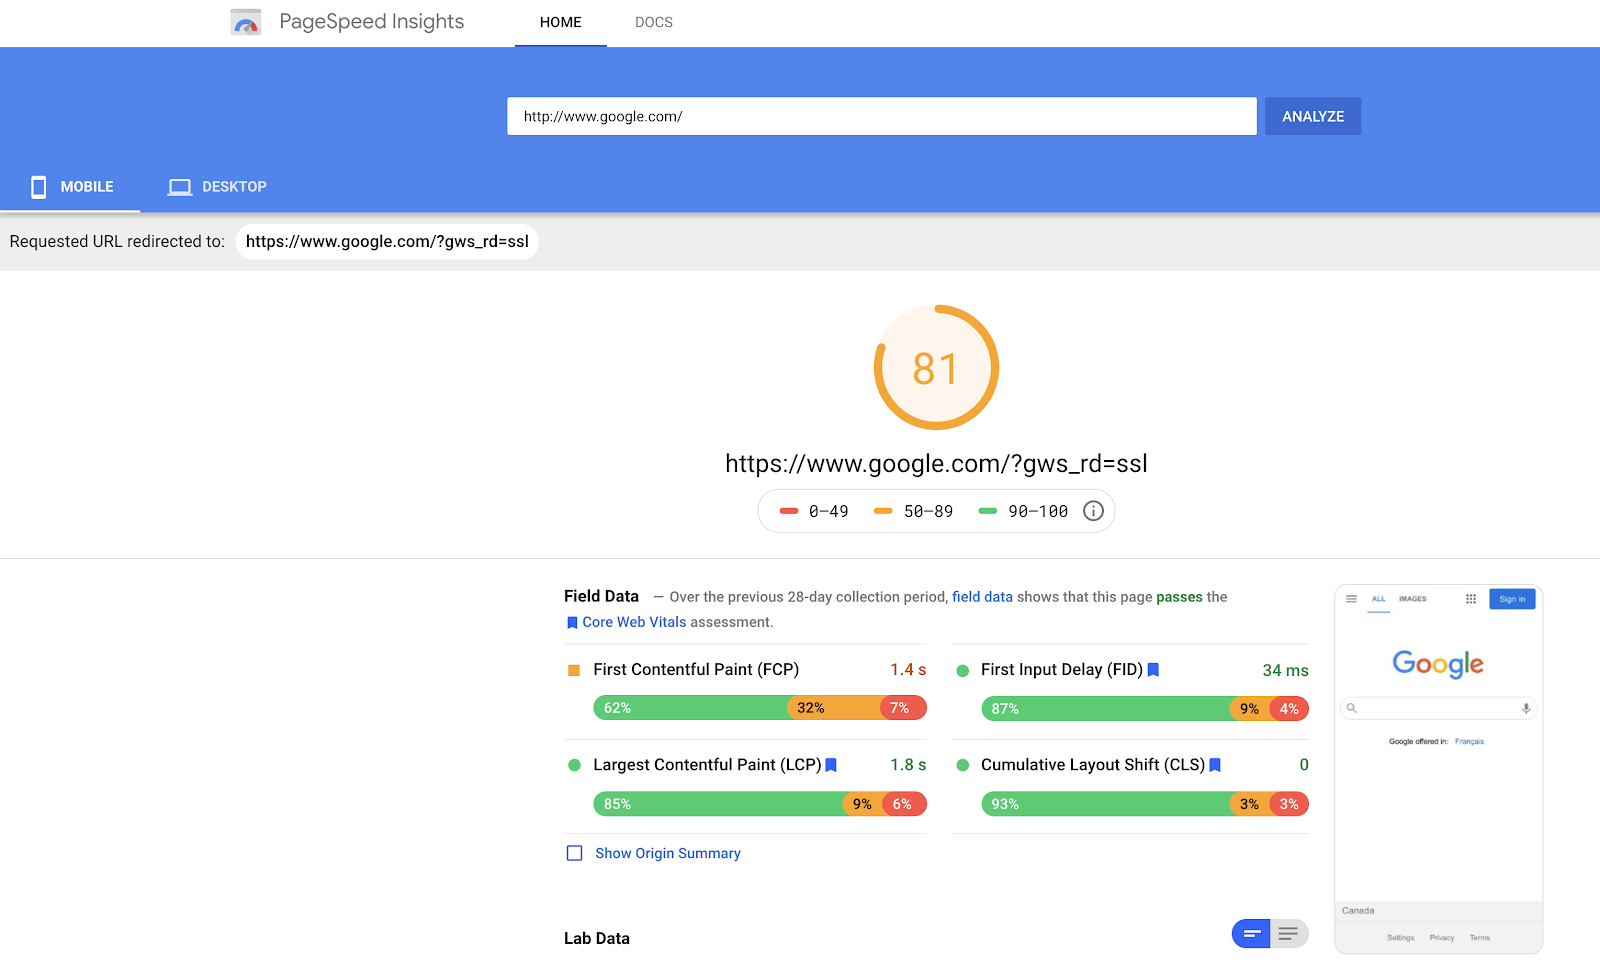 PageSpeed Insights results of google.com/